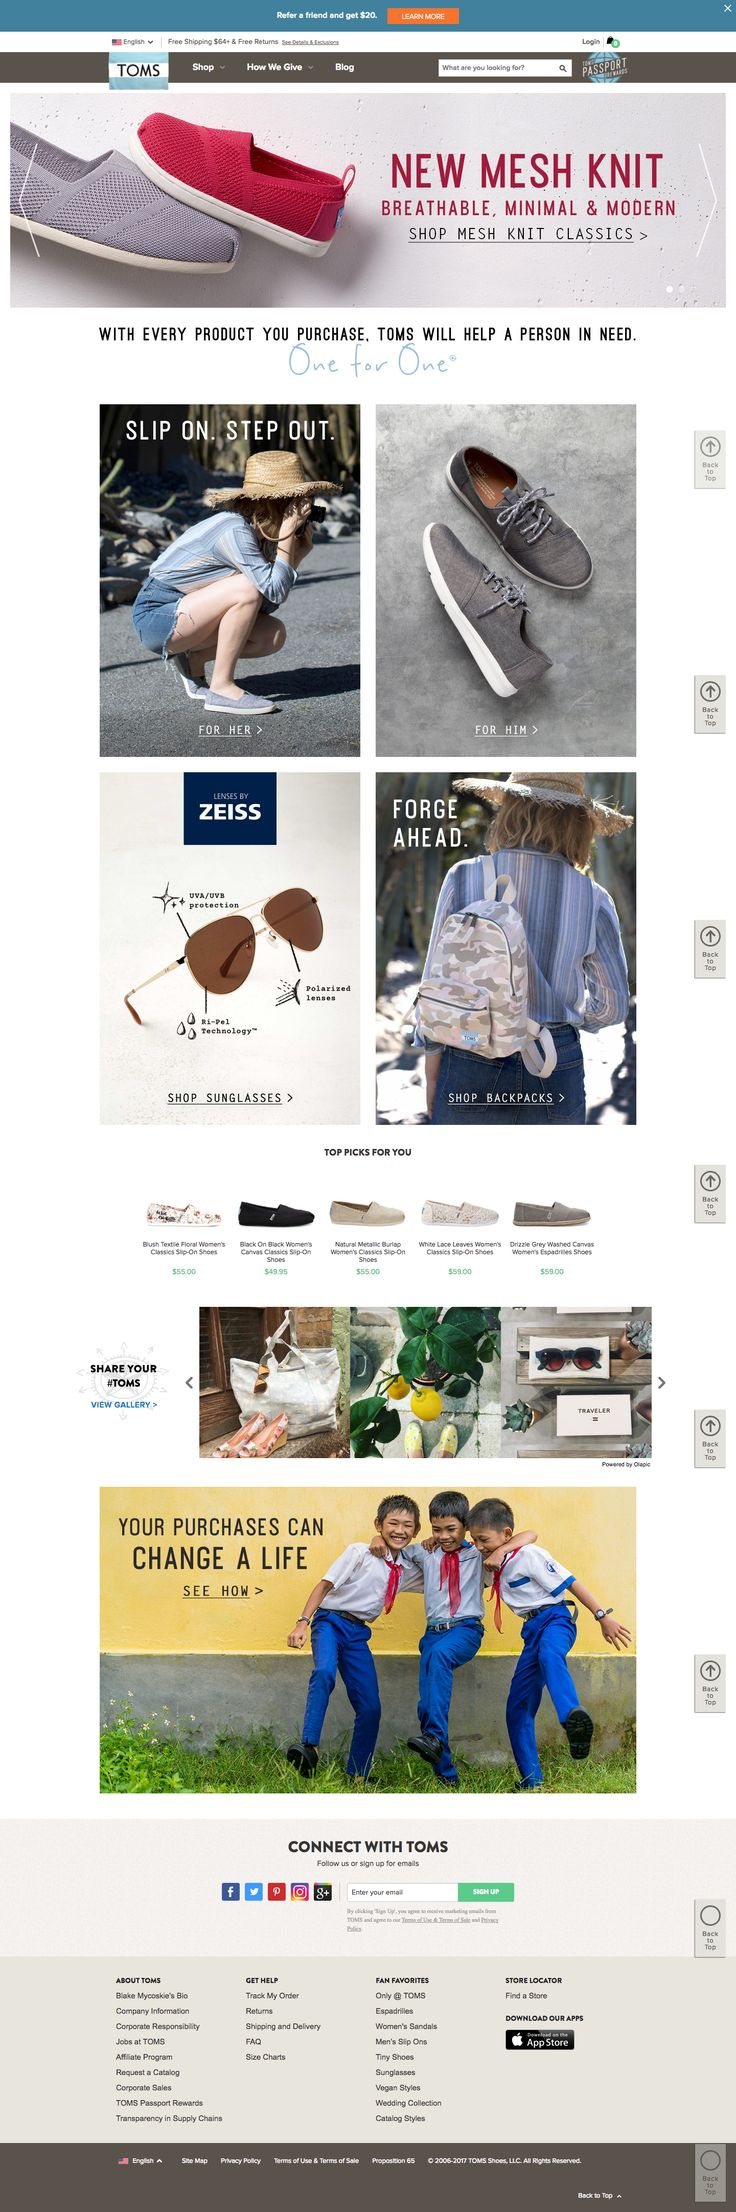 Toms is a one for one business. It focuses more con the actual product rather than on it's social impact.